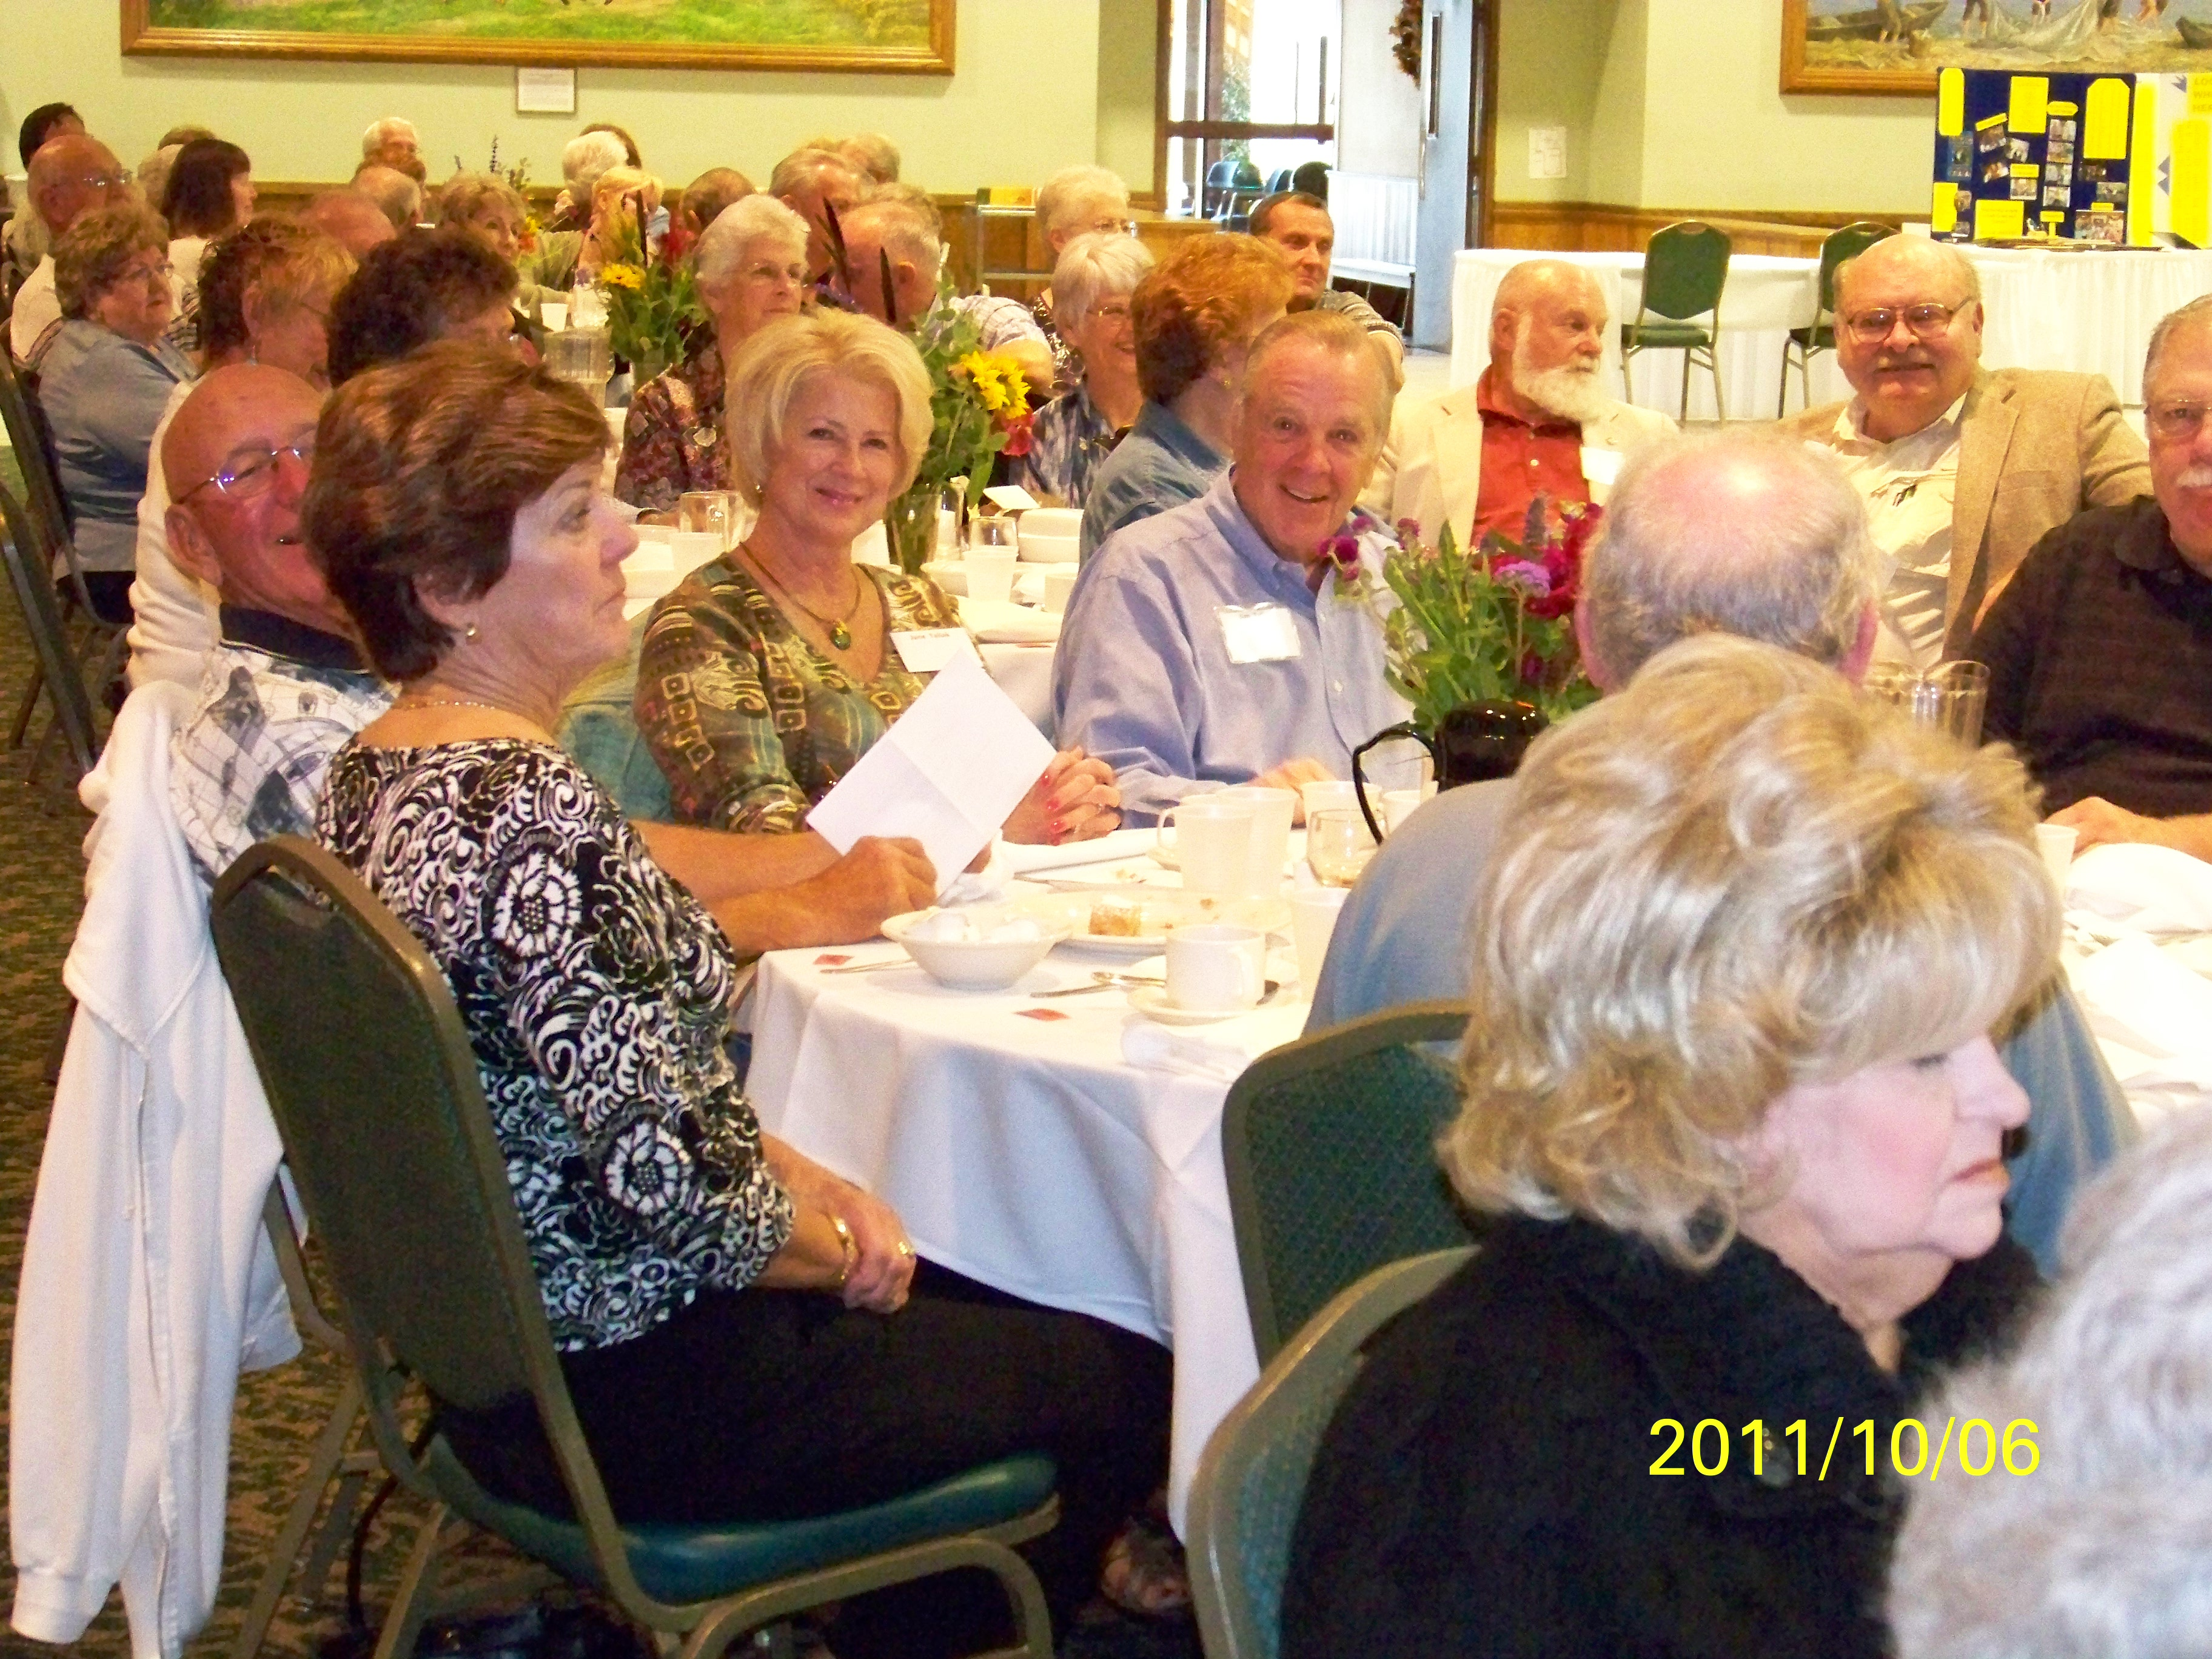 olmsted senior singles Find a variety of senior housing in north olmsted, oh, including senior apartments, senior homes, and more on after55com.